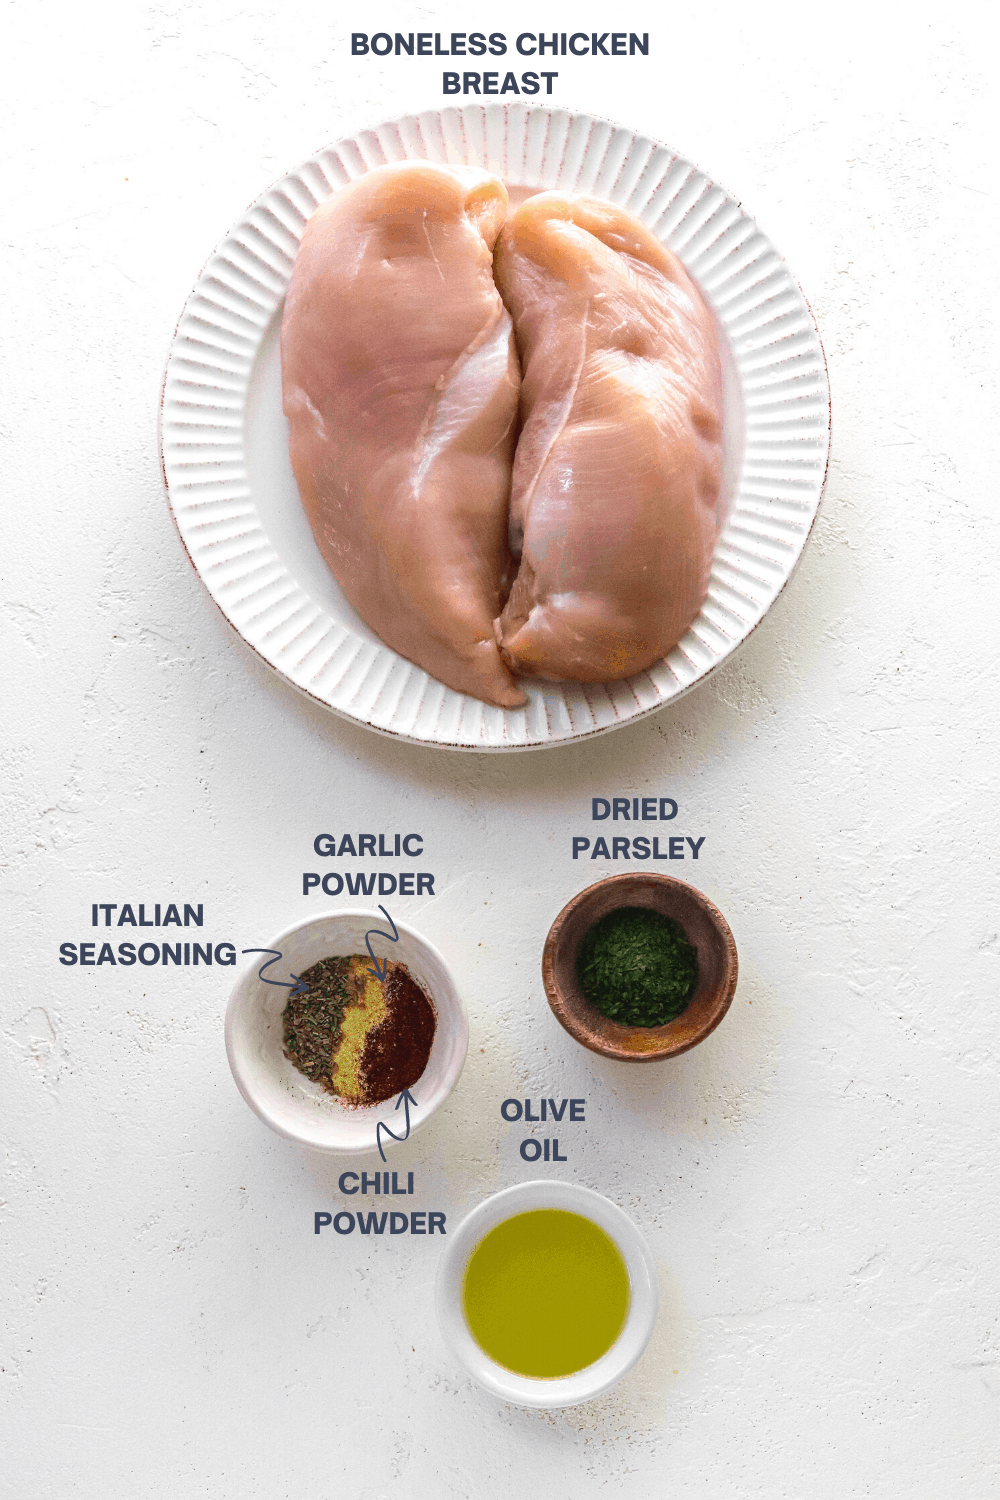 raw chicken breasts on a round plate with a brown bowl filled with green parsley in front of it and another bowl of spices next to it with a white bowl of olive oil in front of it.